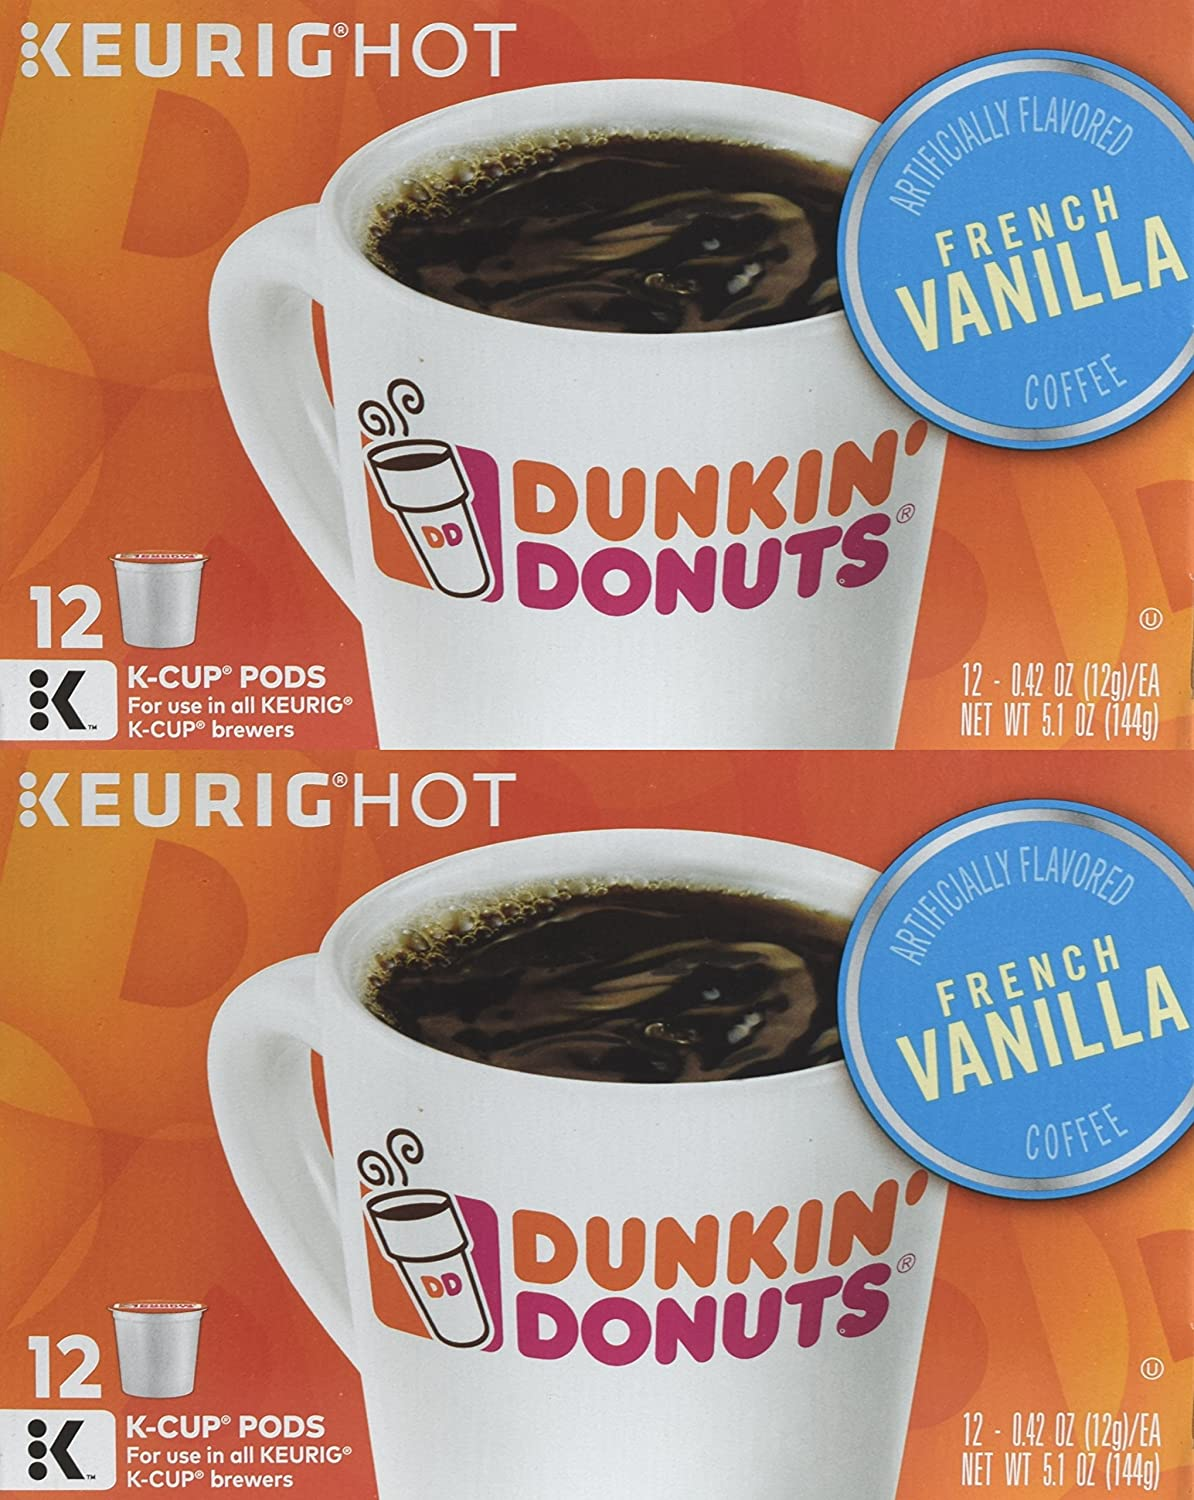 Dunkin' Donuts French Vanilla Coffee Single Serve K-Cups, 24 Count